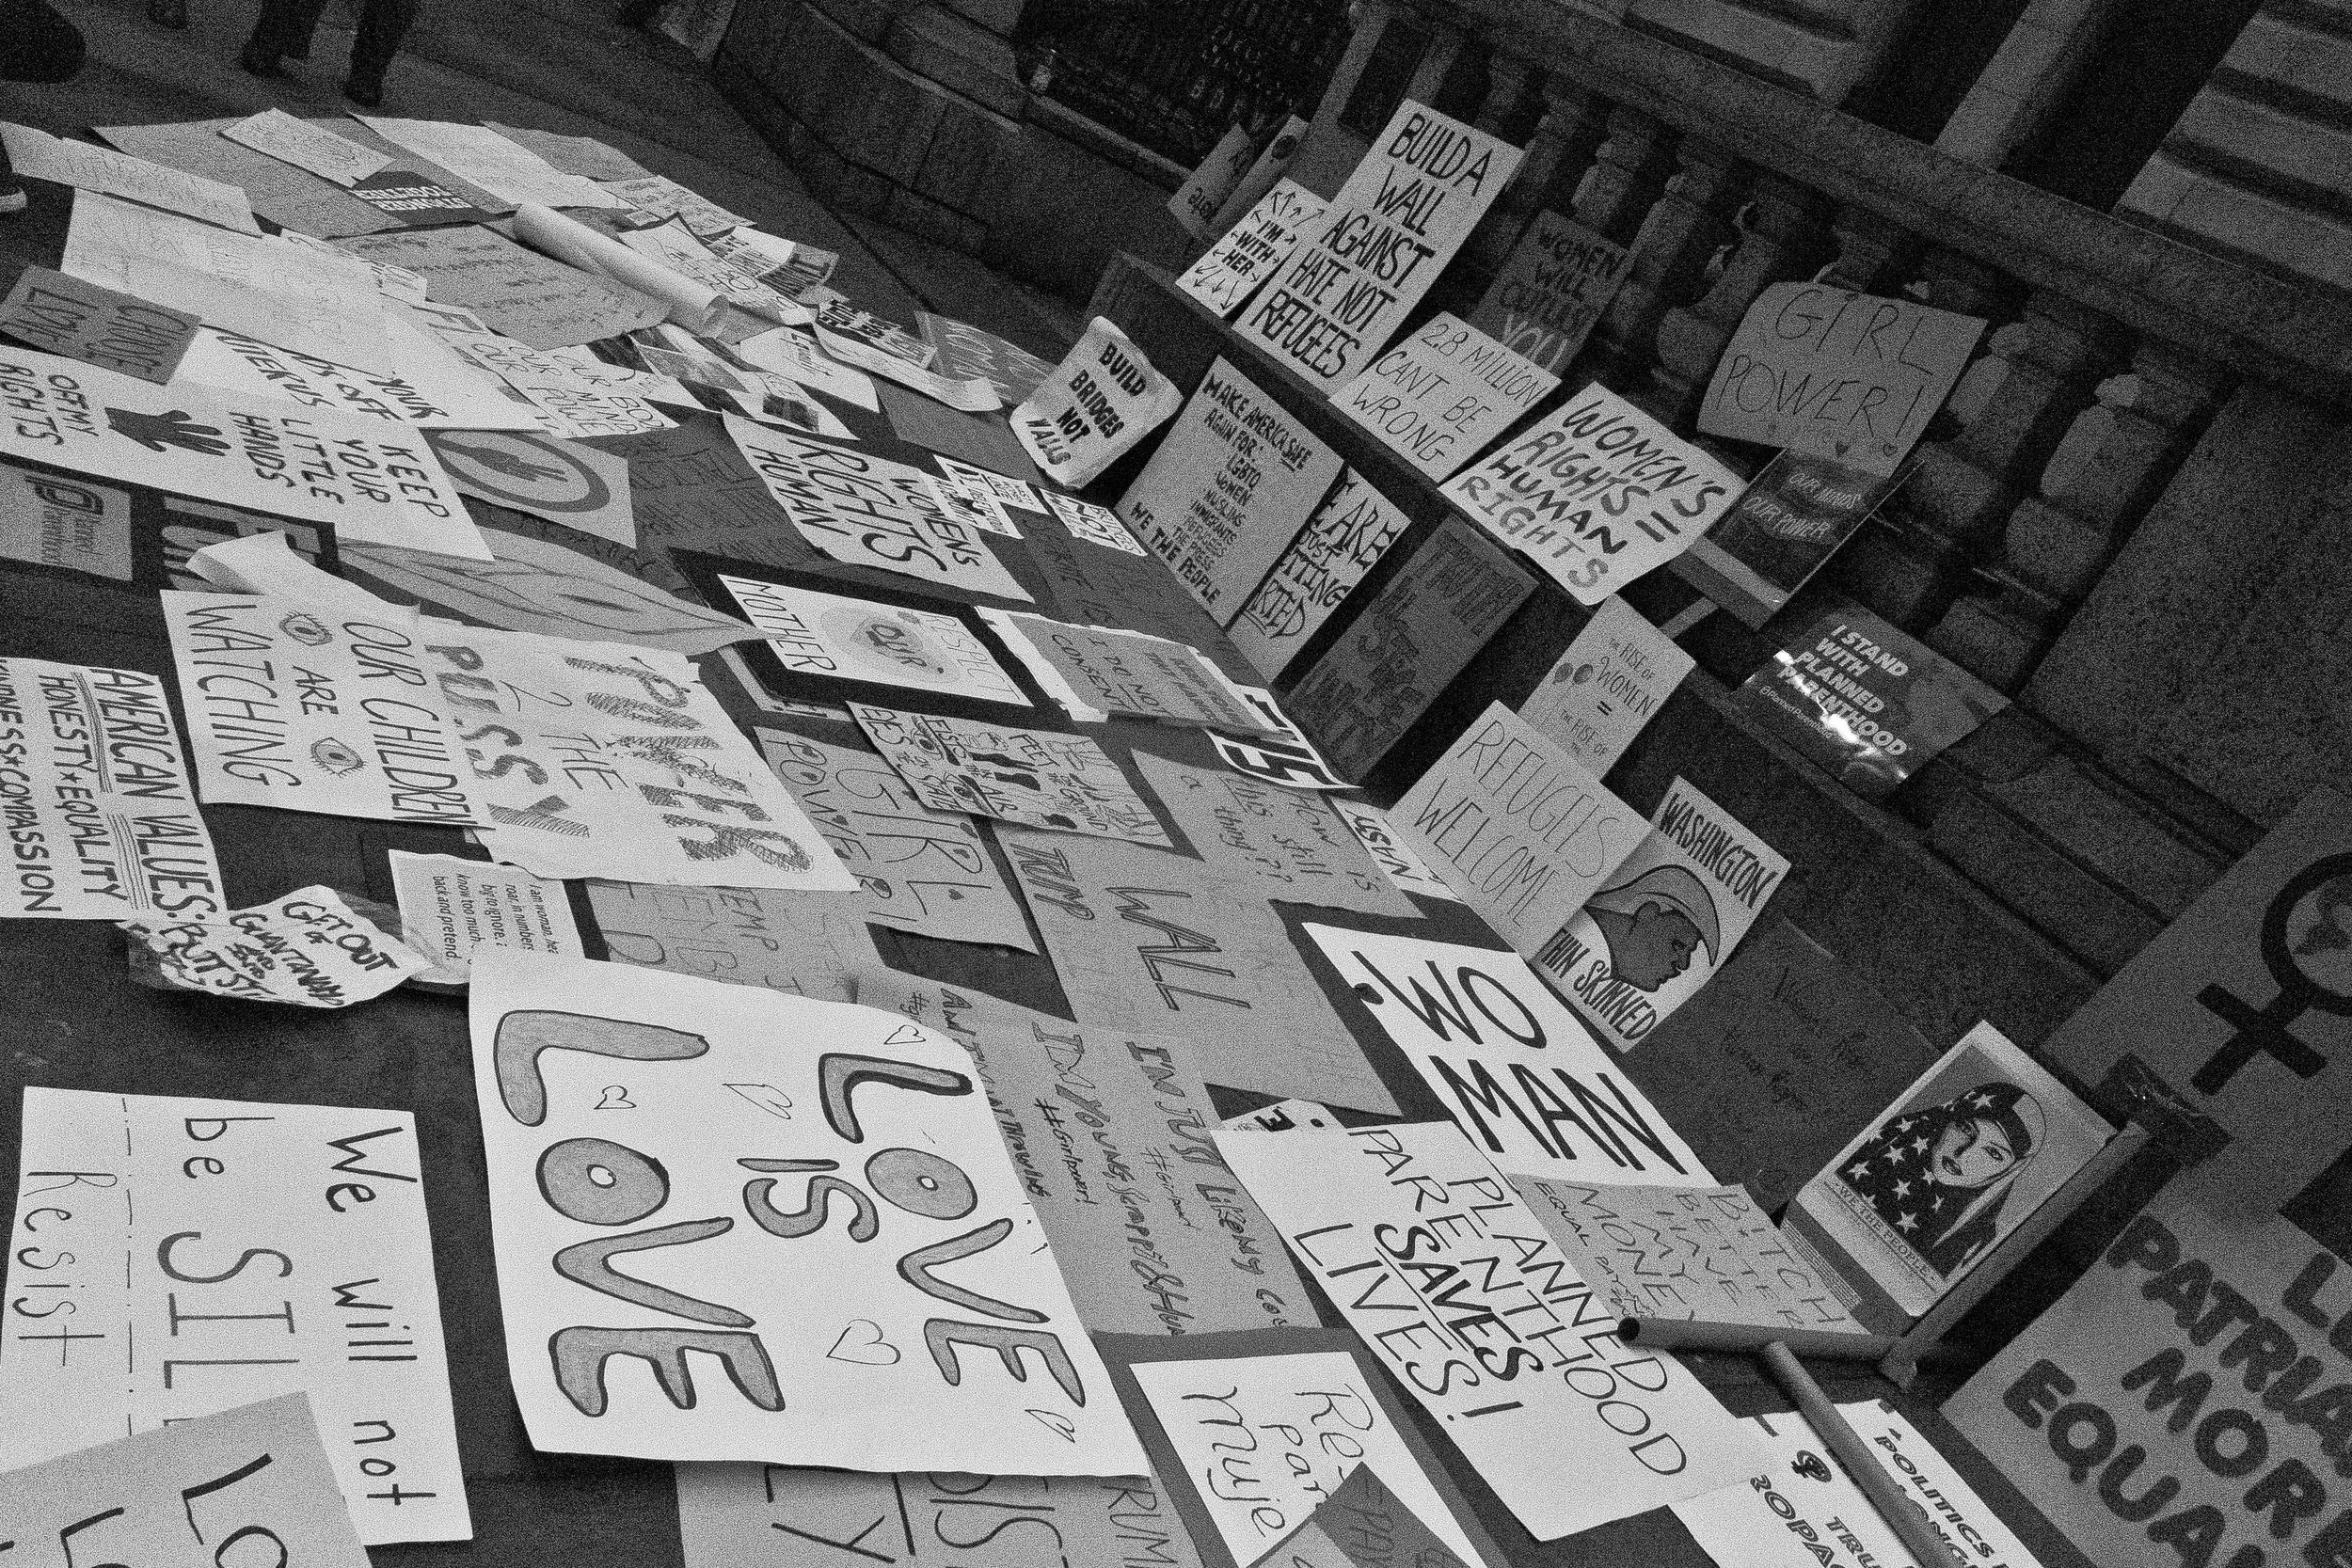 Marchers dropped their signs outside of the New York Public Library on 42nd Street - creating a collage of messages representing the goals and demands of the NY marchers.